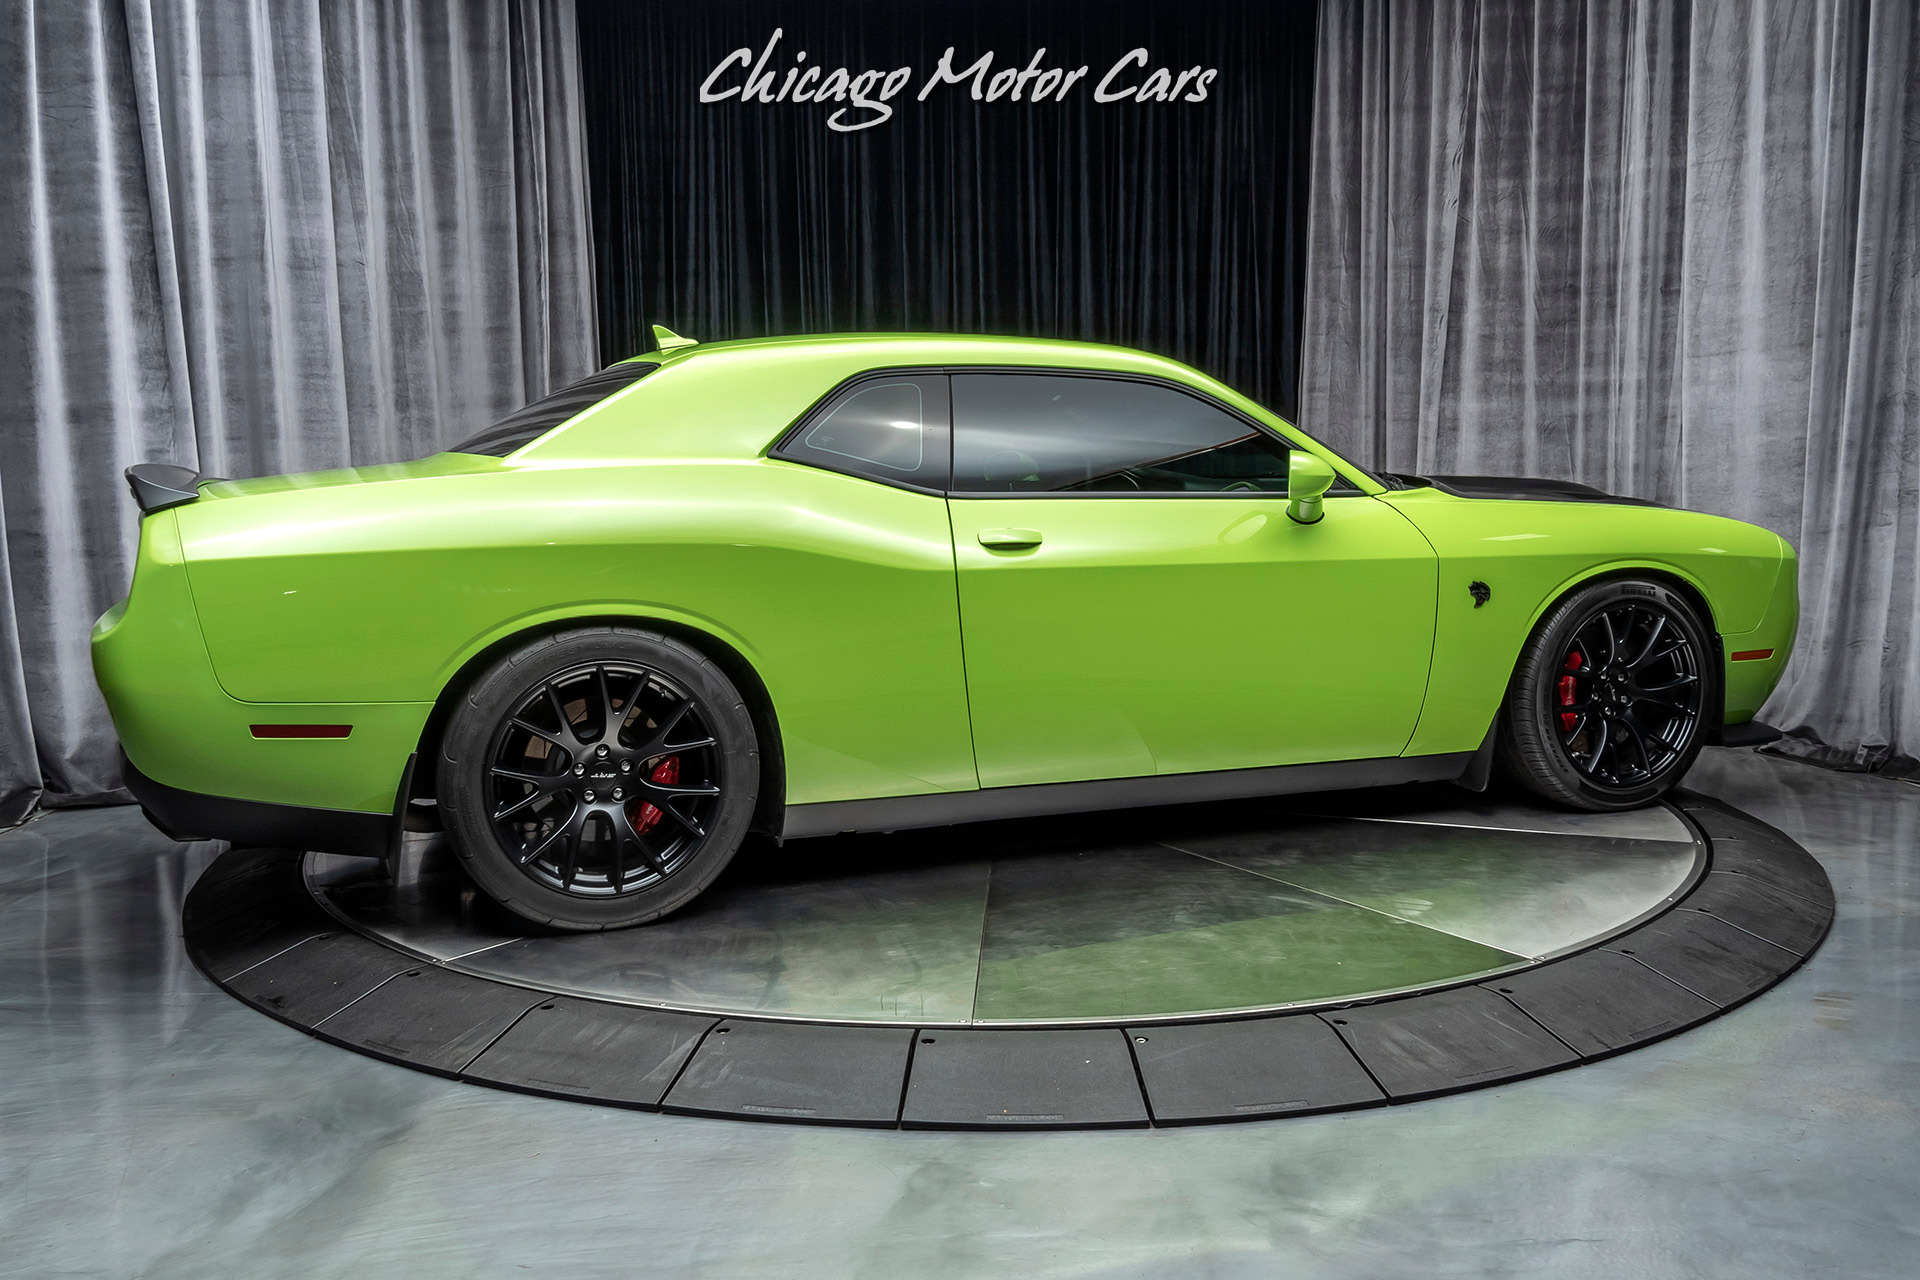 dodge challenger hellcat for sale in jacksonville fl Used 2015 Dodge Challenger SRT Hellcat For Sale (Special